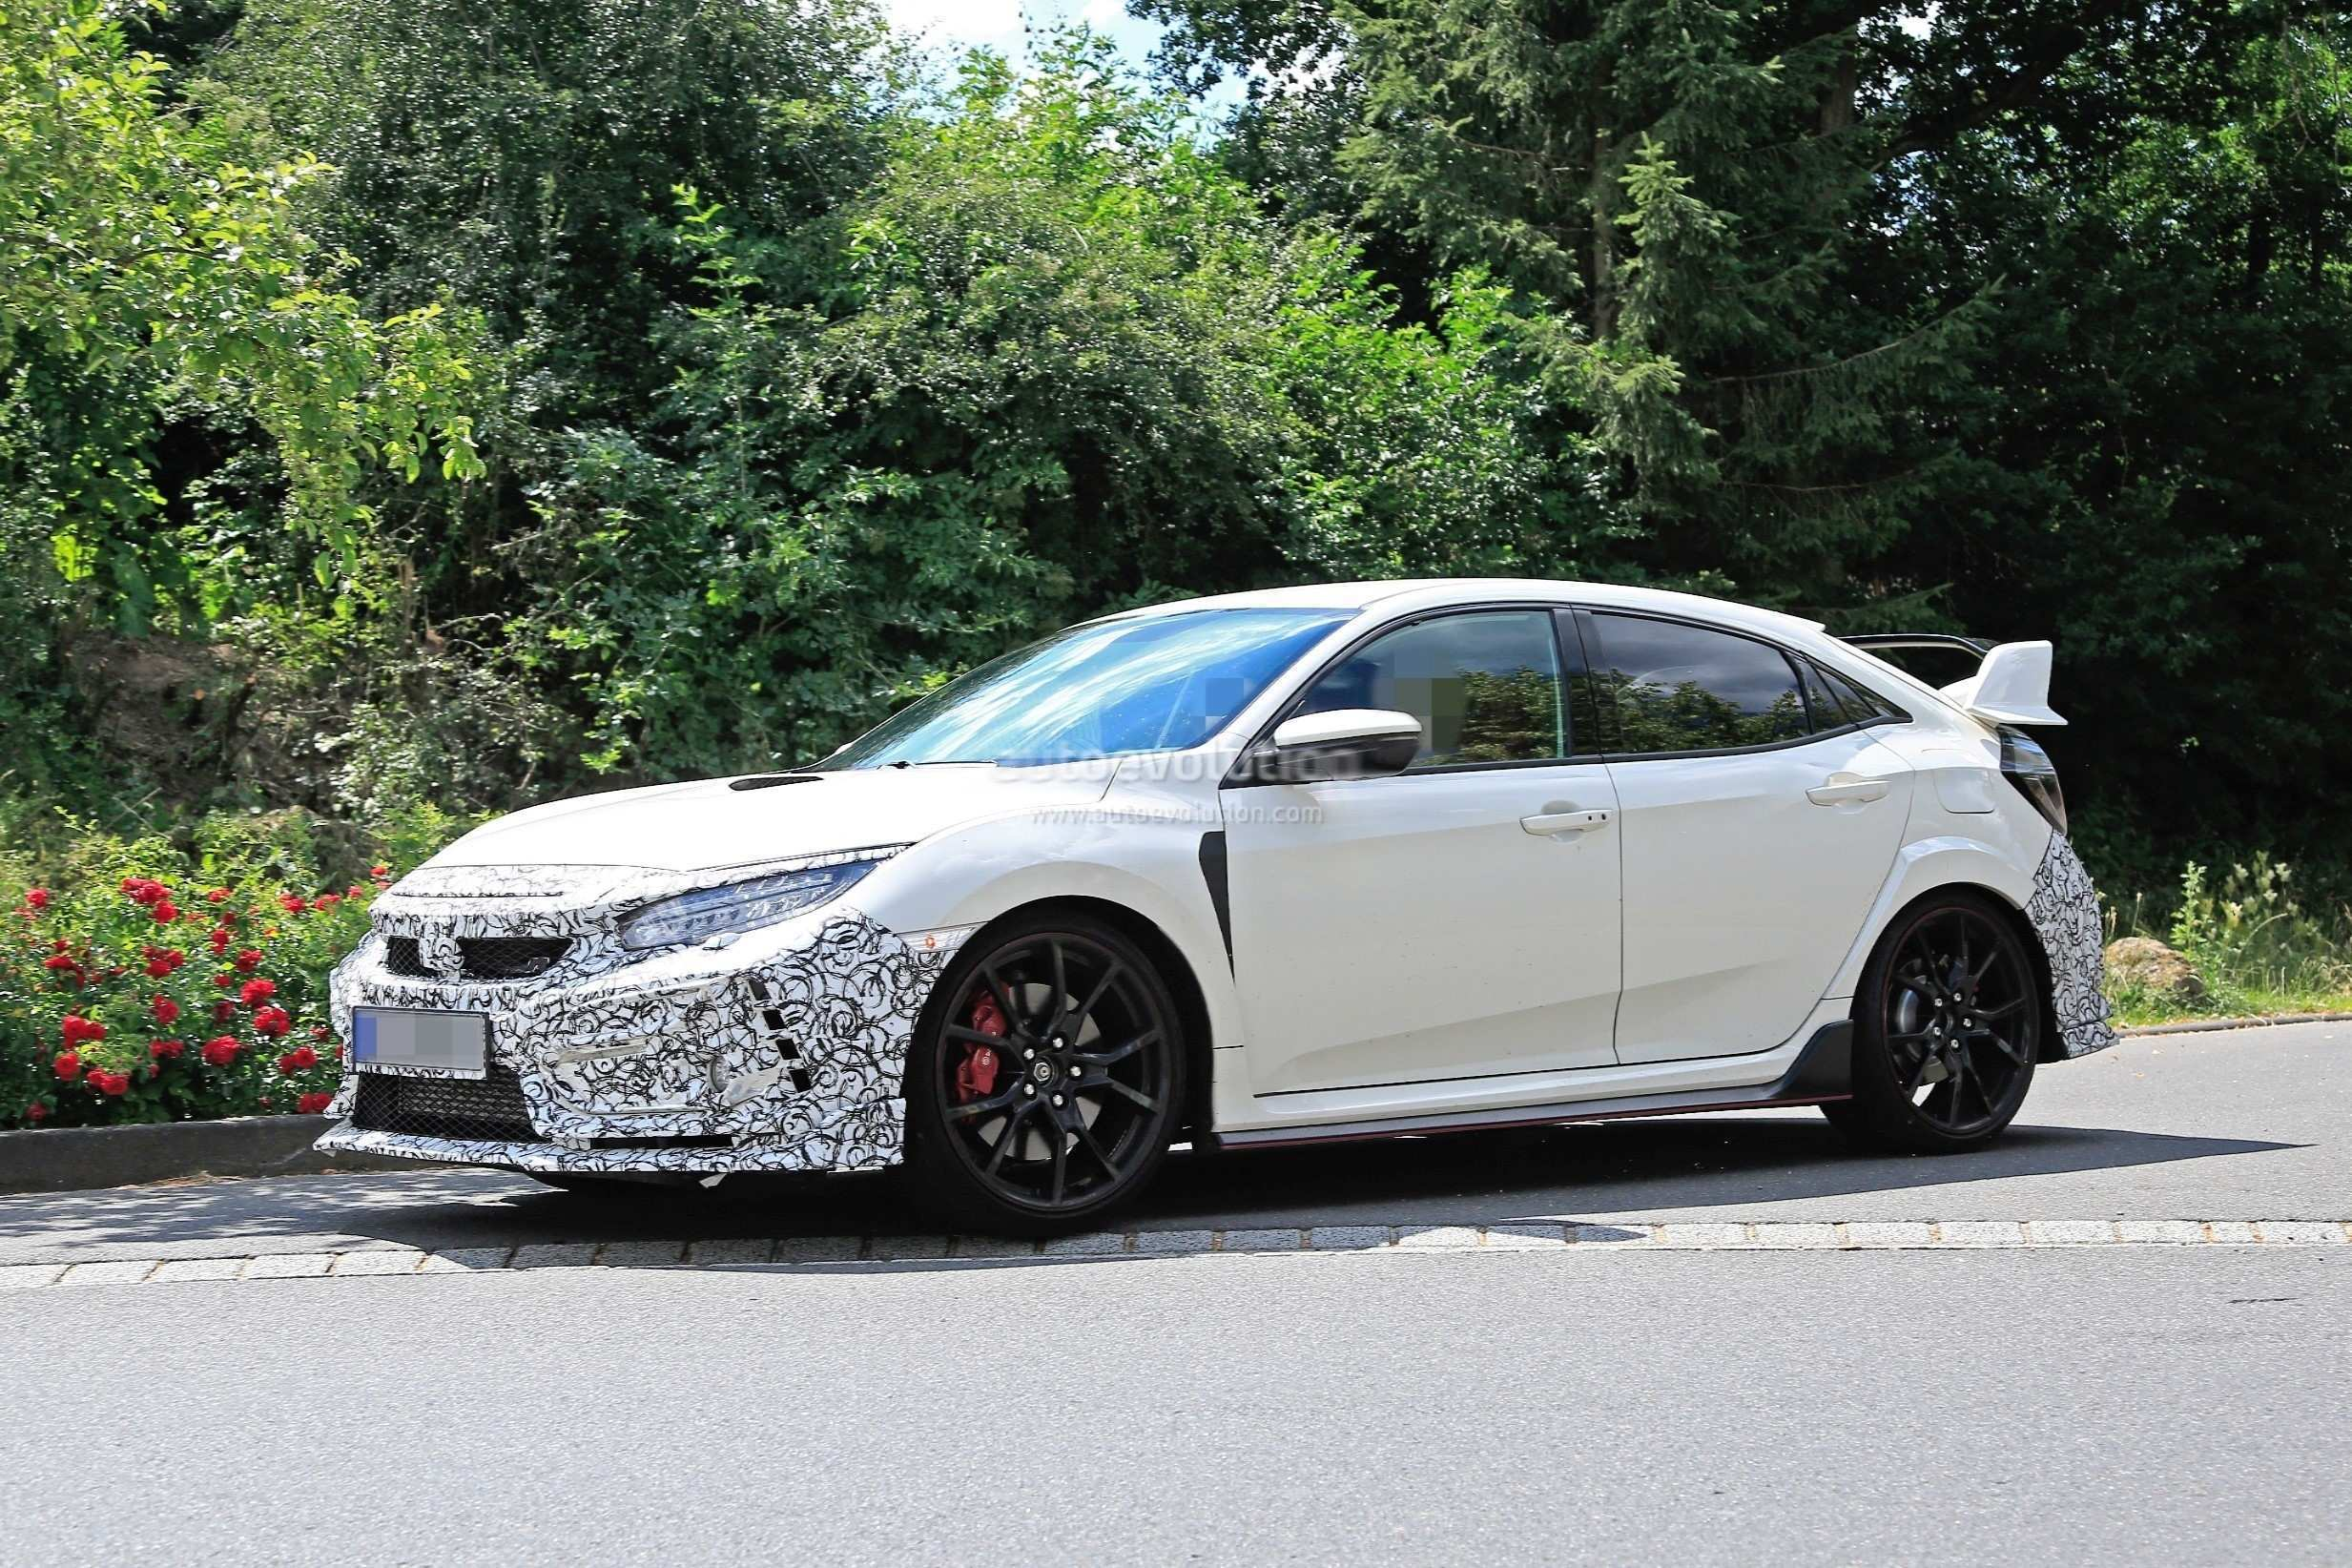 79 Concept of New Honda Type R 2019 Release Date Review And Release Date Photos by New Honda Type R 2019 Release Date Review And Release Date